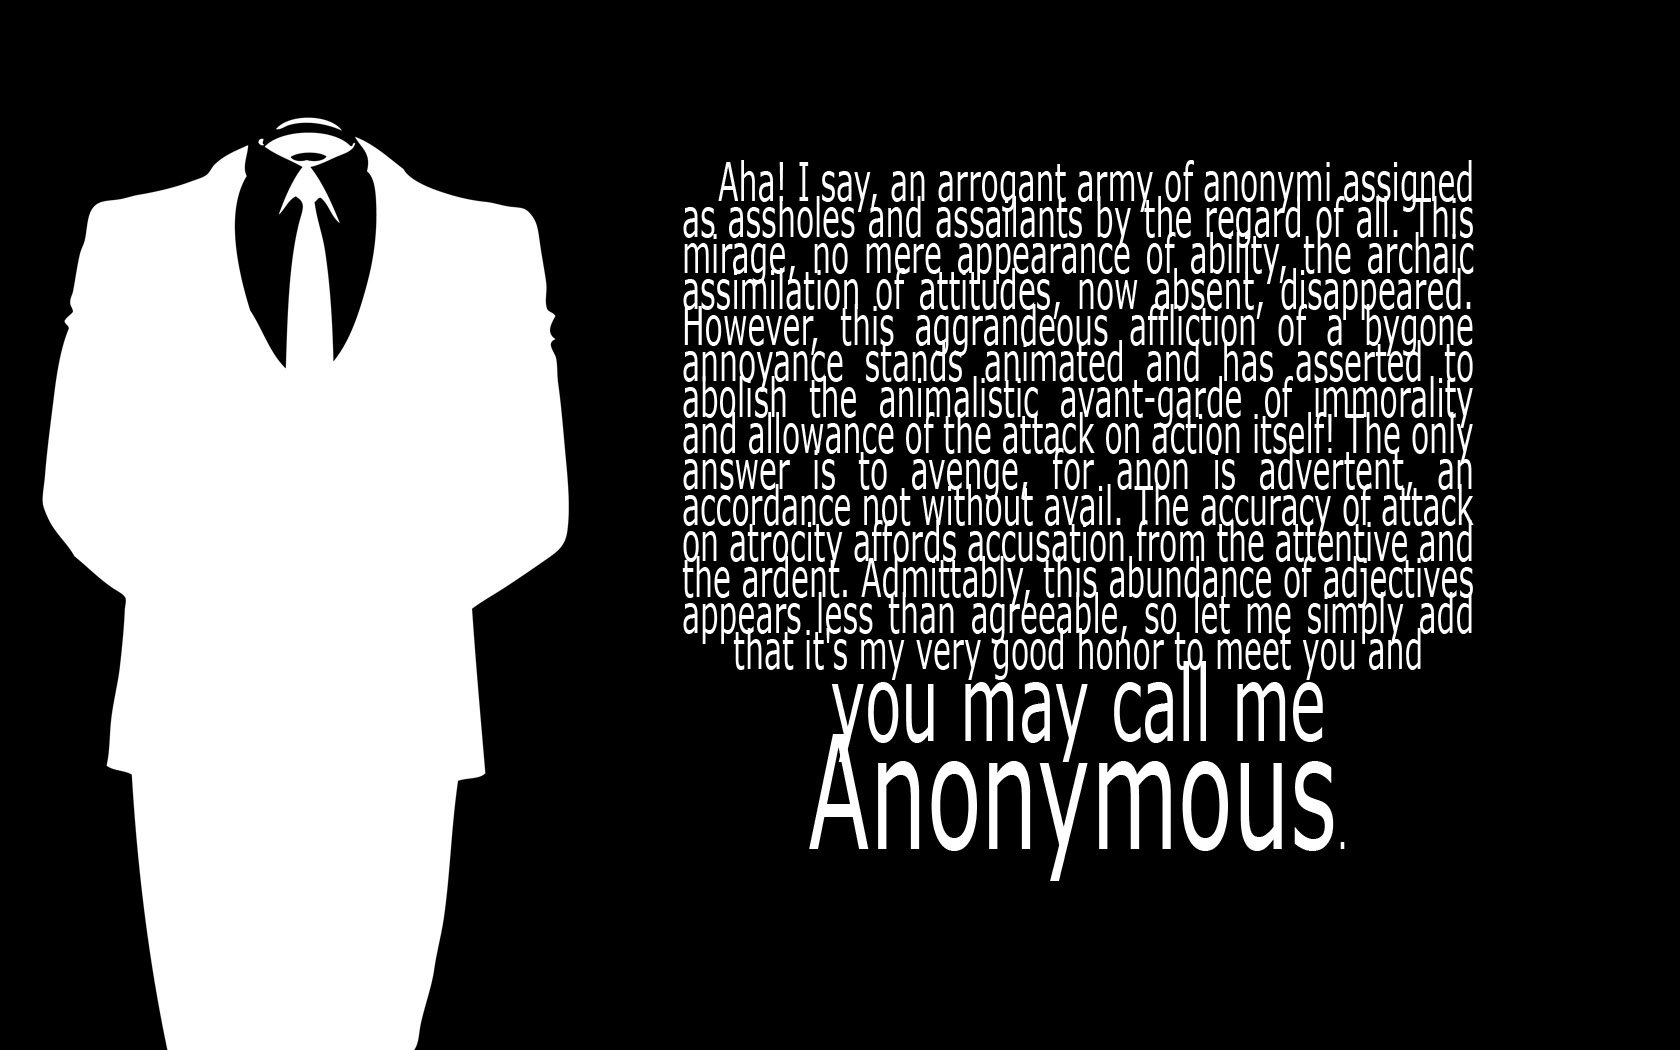 download wallpaper 3840x2400 anonymous - photo #3